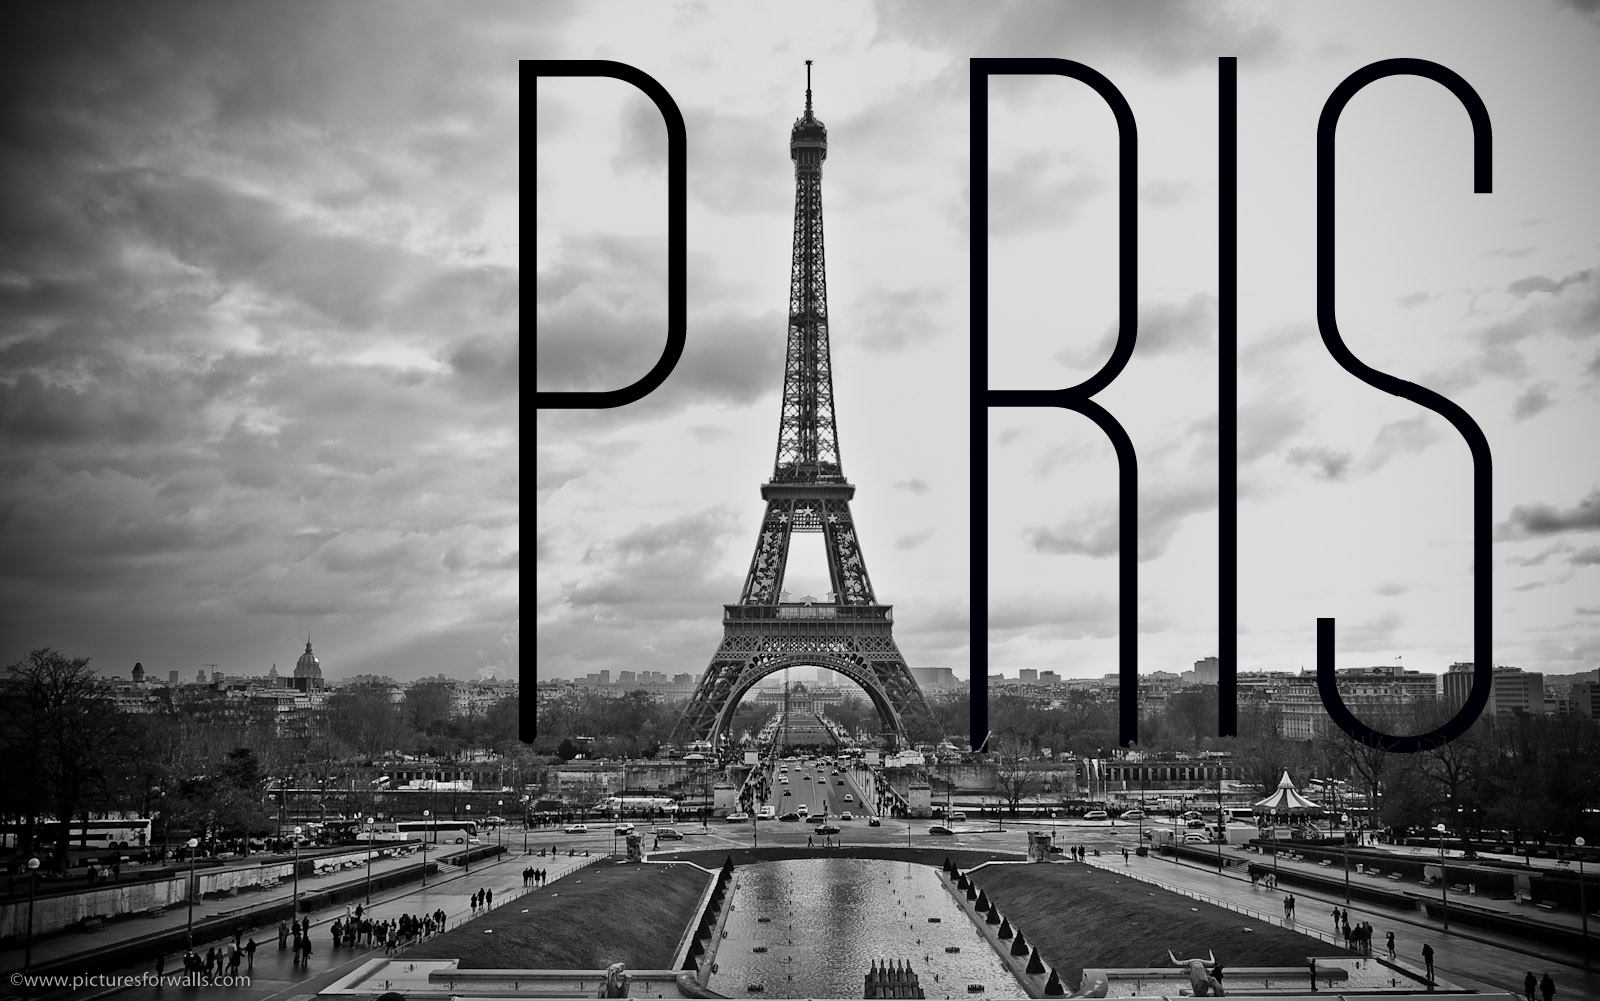 Black And White Paris Wallpapers For Android Desktop Wallpaper 1600 X 1001 Px 48125 KB Pattern Widescreen Vintage Girly Phtography